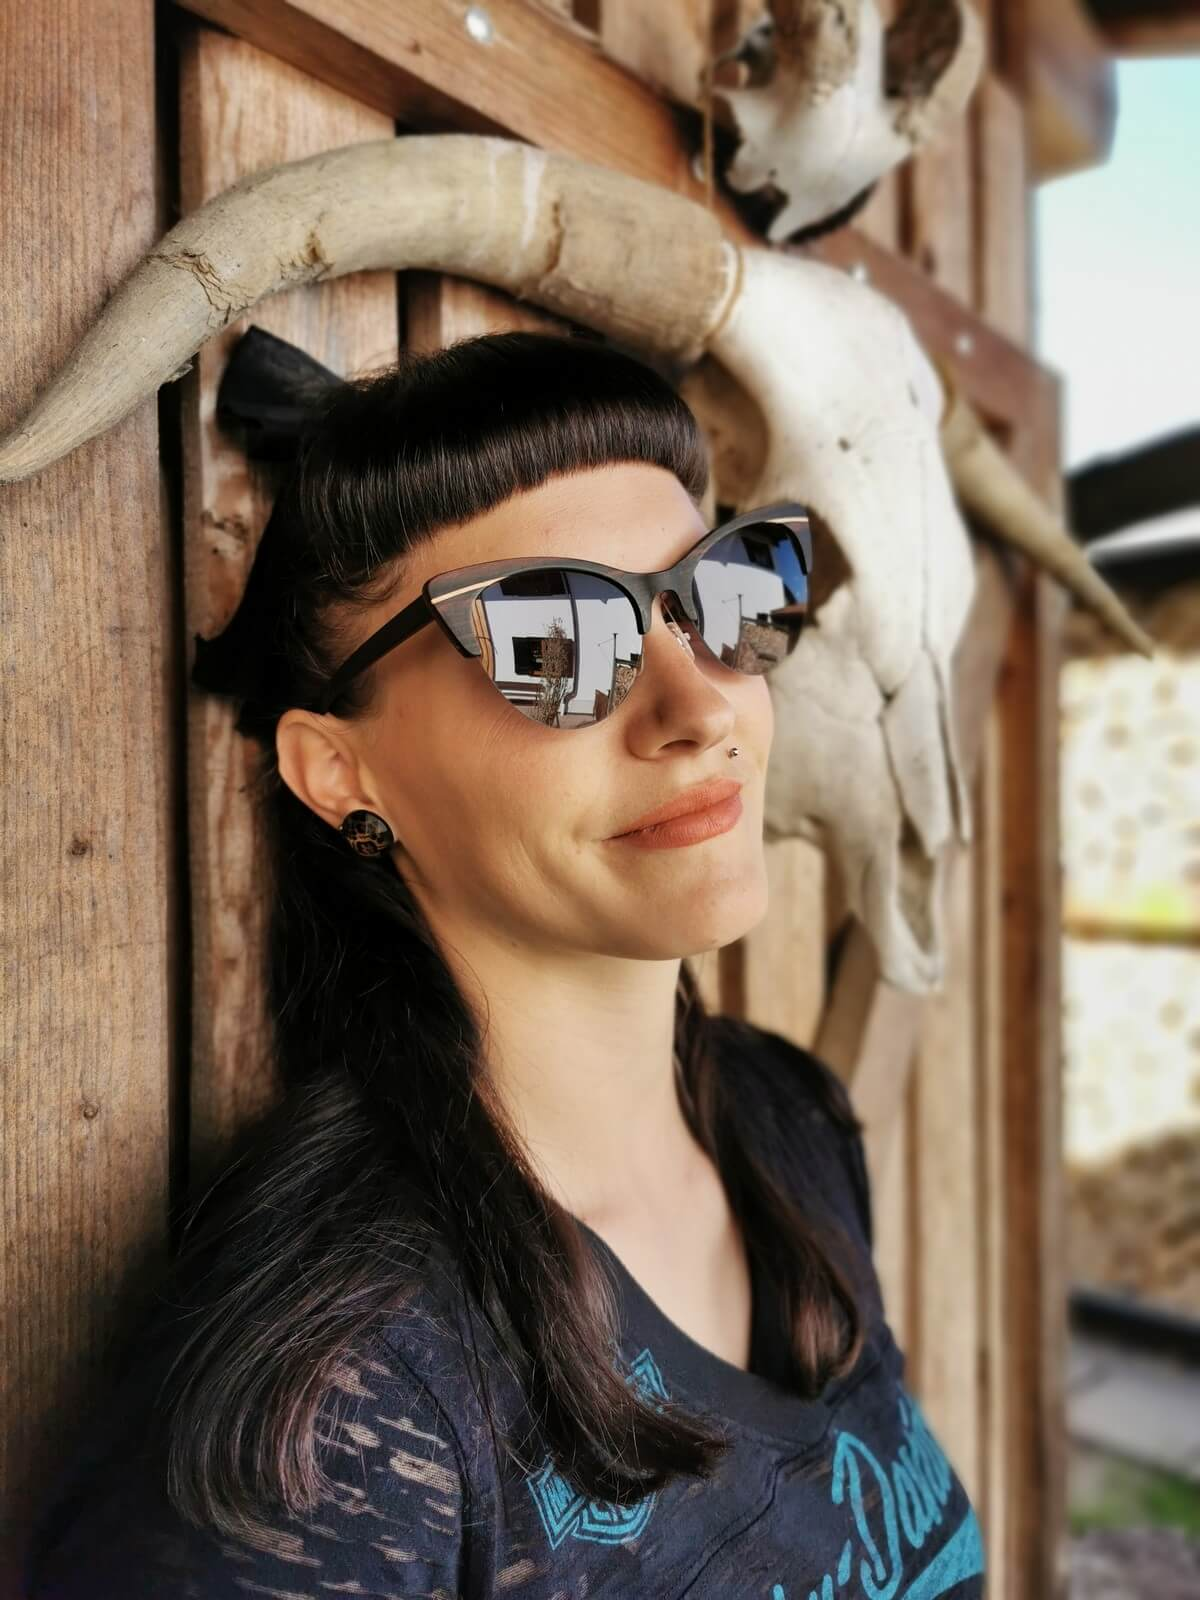 WOOD SUNGLASSES Black Cateye Design | WOODEN SHADE | Model: Ina Maurer